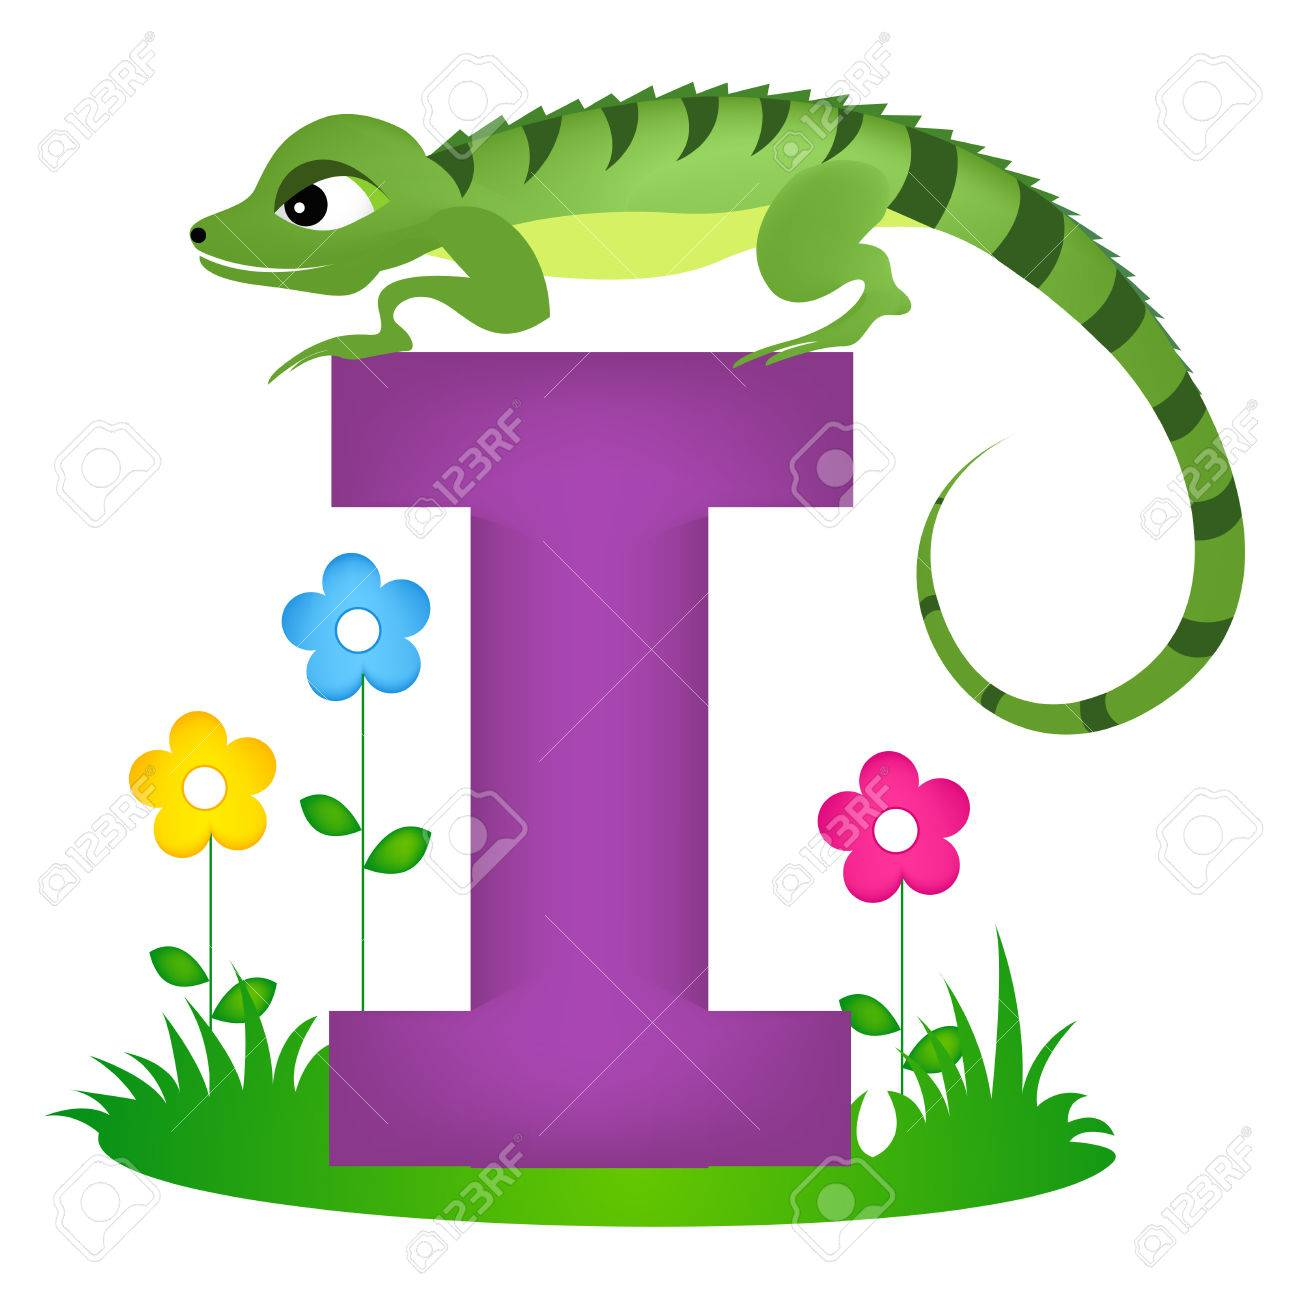 colorful animal alphabet letter i with a cute iguana flash card